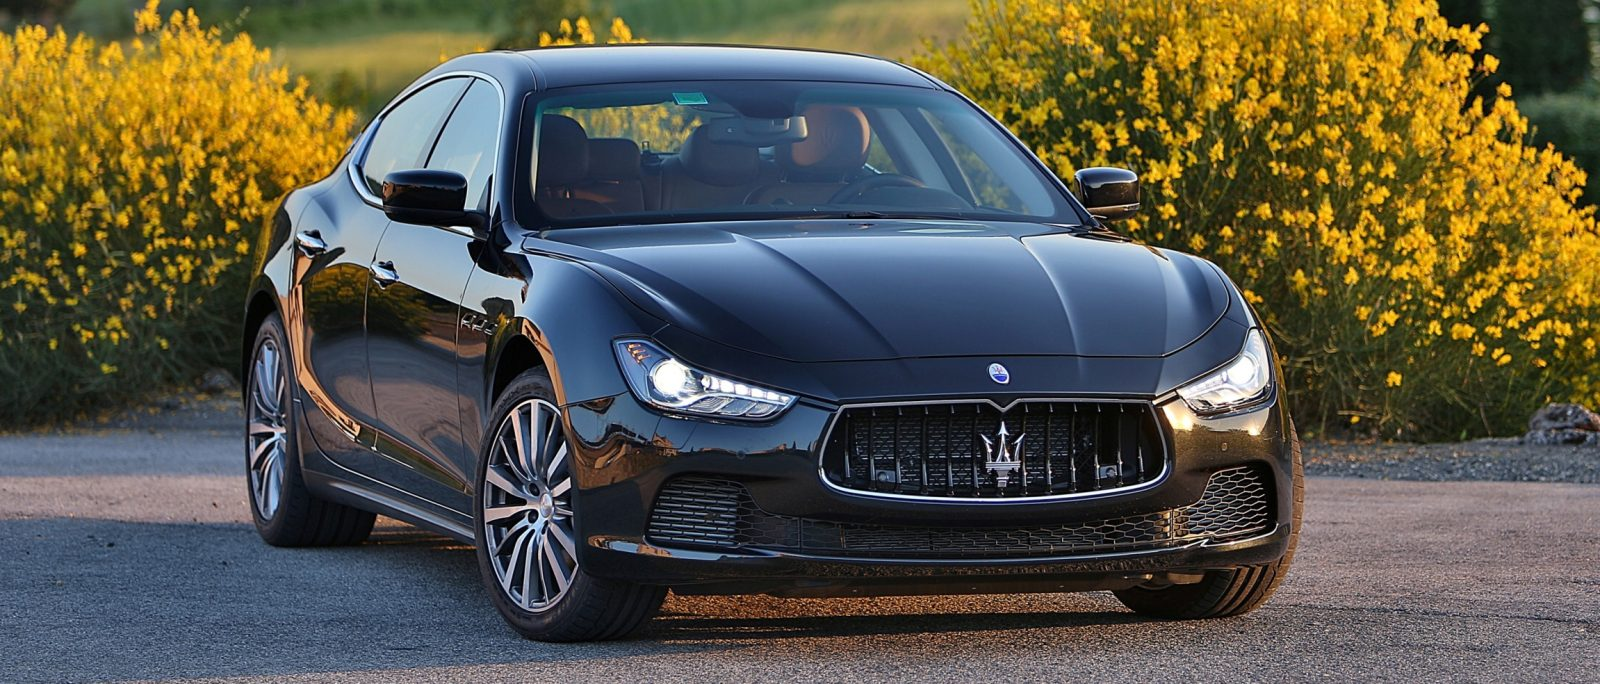 2014 Maserati Ghibli - Latest Official Photos 14